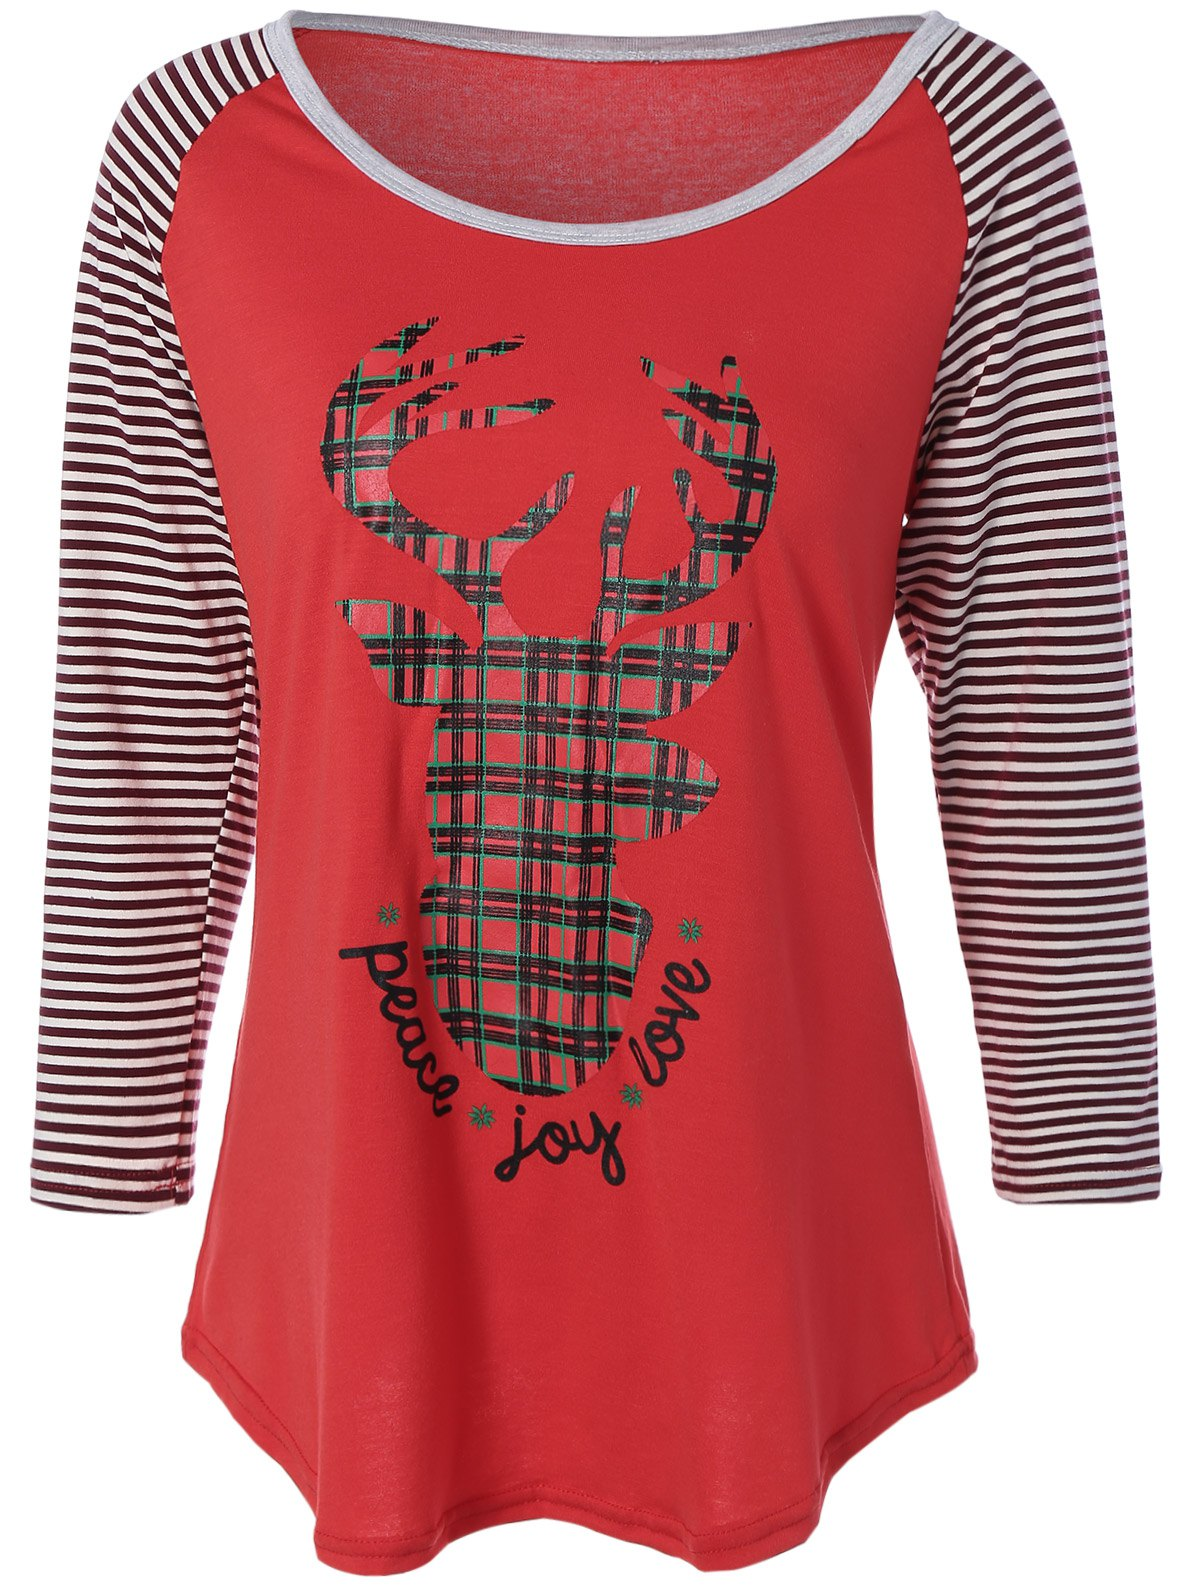 Reindeer Striped Raglan Sleeve Christmas T-ShirtWOMEN<br><br>Size: XL; Color: RED; Material: Cotton Blends; Shirt Length: Regular; Sleeve Length: Three Quarter; Collar: Scoop Neck; Style: Casual; Season: Fall,Spring,Winter; Embellishment: Pattern; Pattern Type: Animal; Weight: 0.183kg; Package Contents: 1 x Tee;